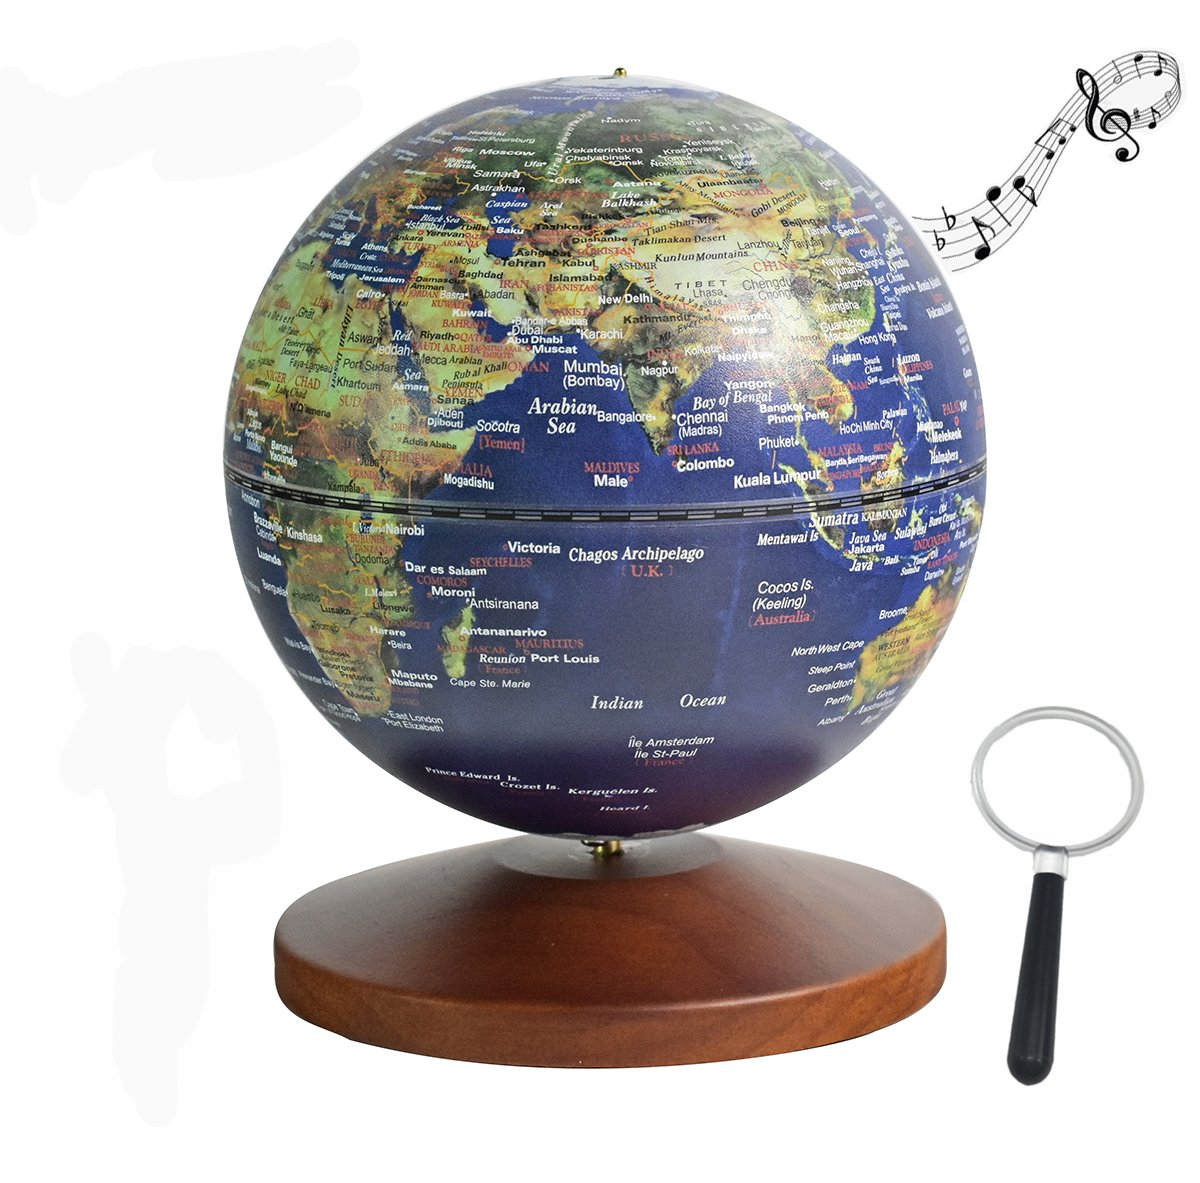 Illuminated World Globe for Kids With Wooden Stand Base, Built- in LED for Illuminated Night View, Rechargeable LED Glowing Globe Night Light with Music Box, Ideal Educational Gift for Kids Teens, 5''